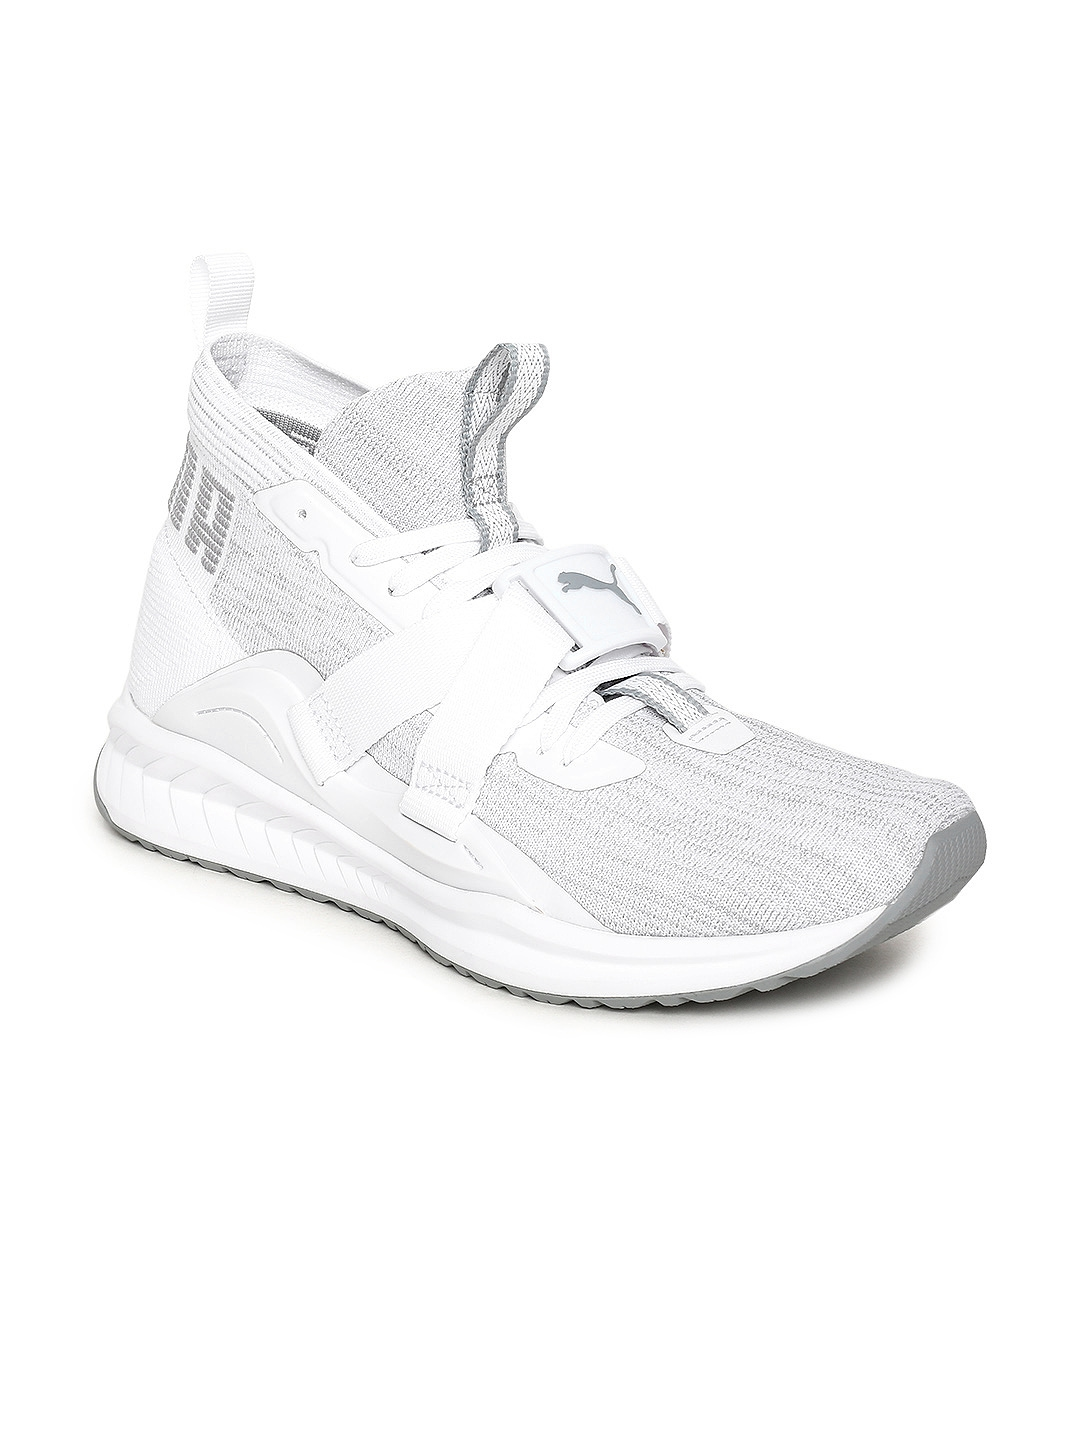 online retailer 62e37 b648e Puma Men White IGNITE evoKNIT 2 Running Shoes